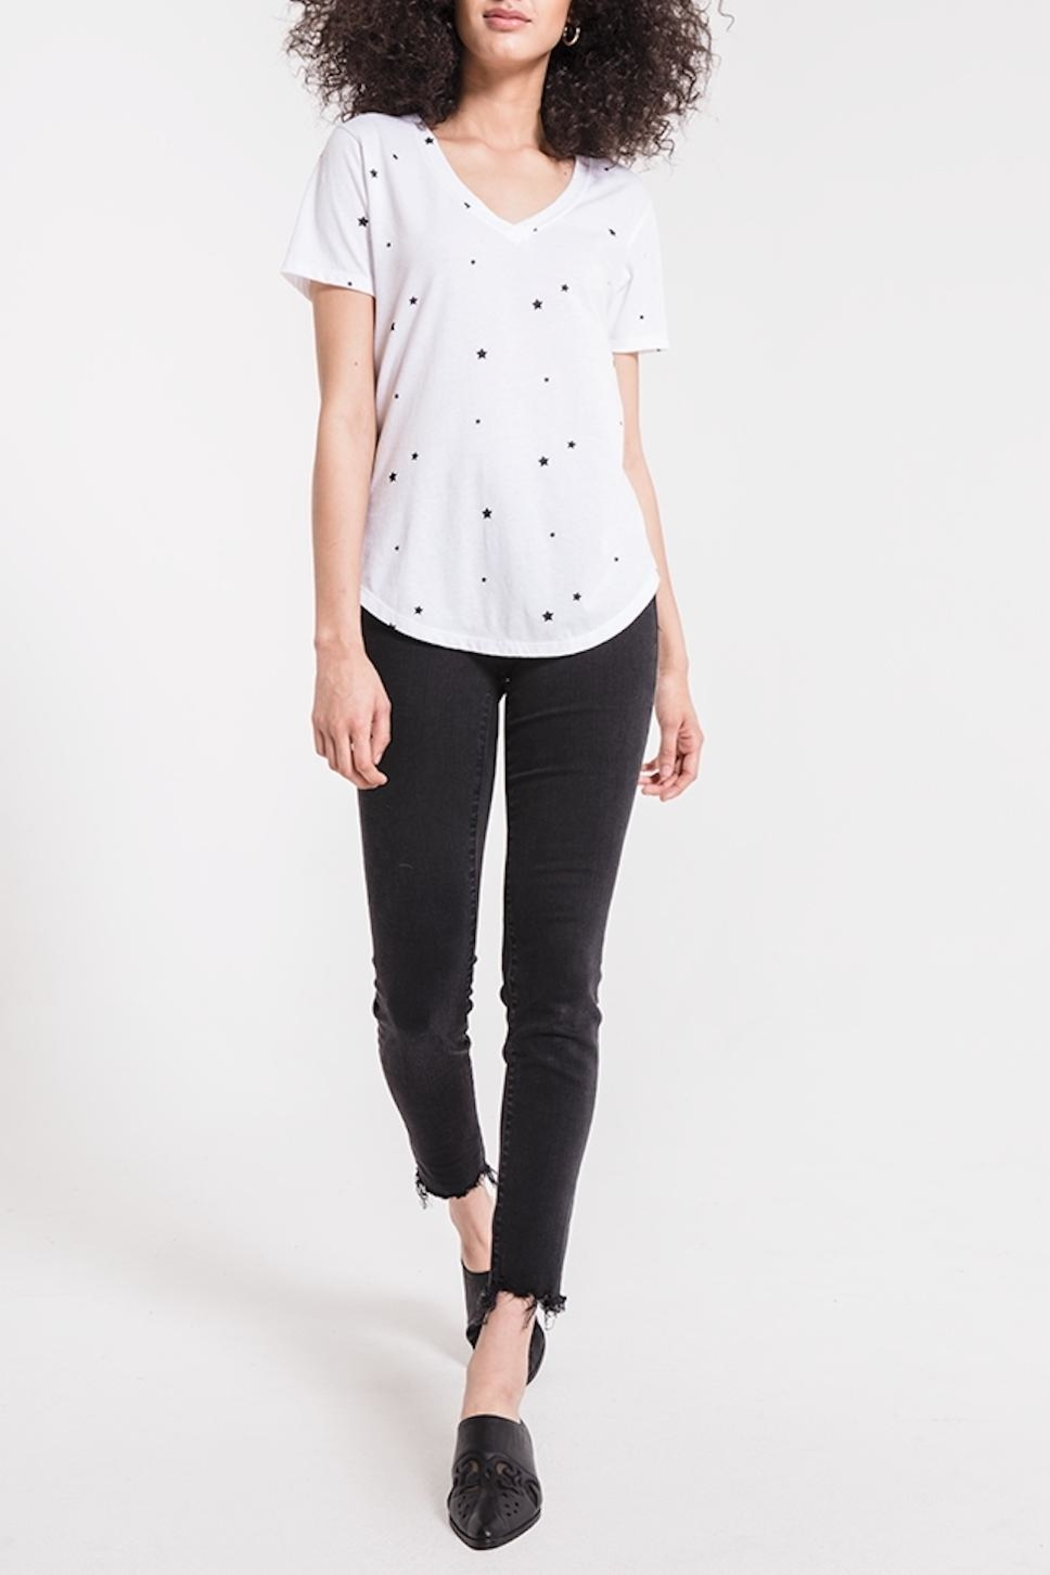 z supply Star Print Tee - Front Full Image